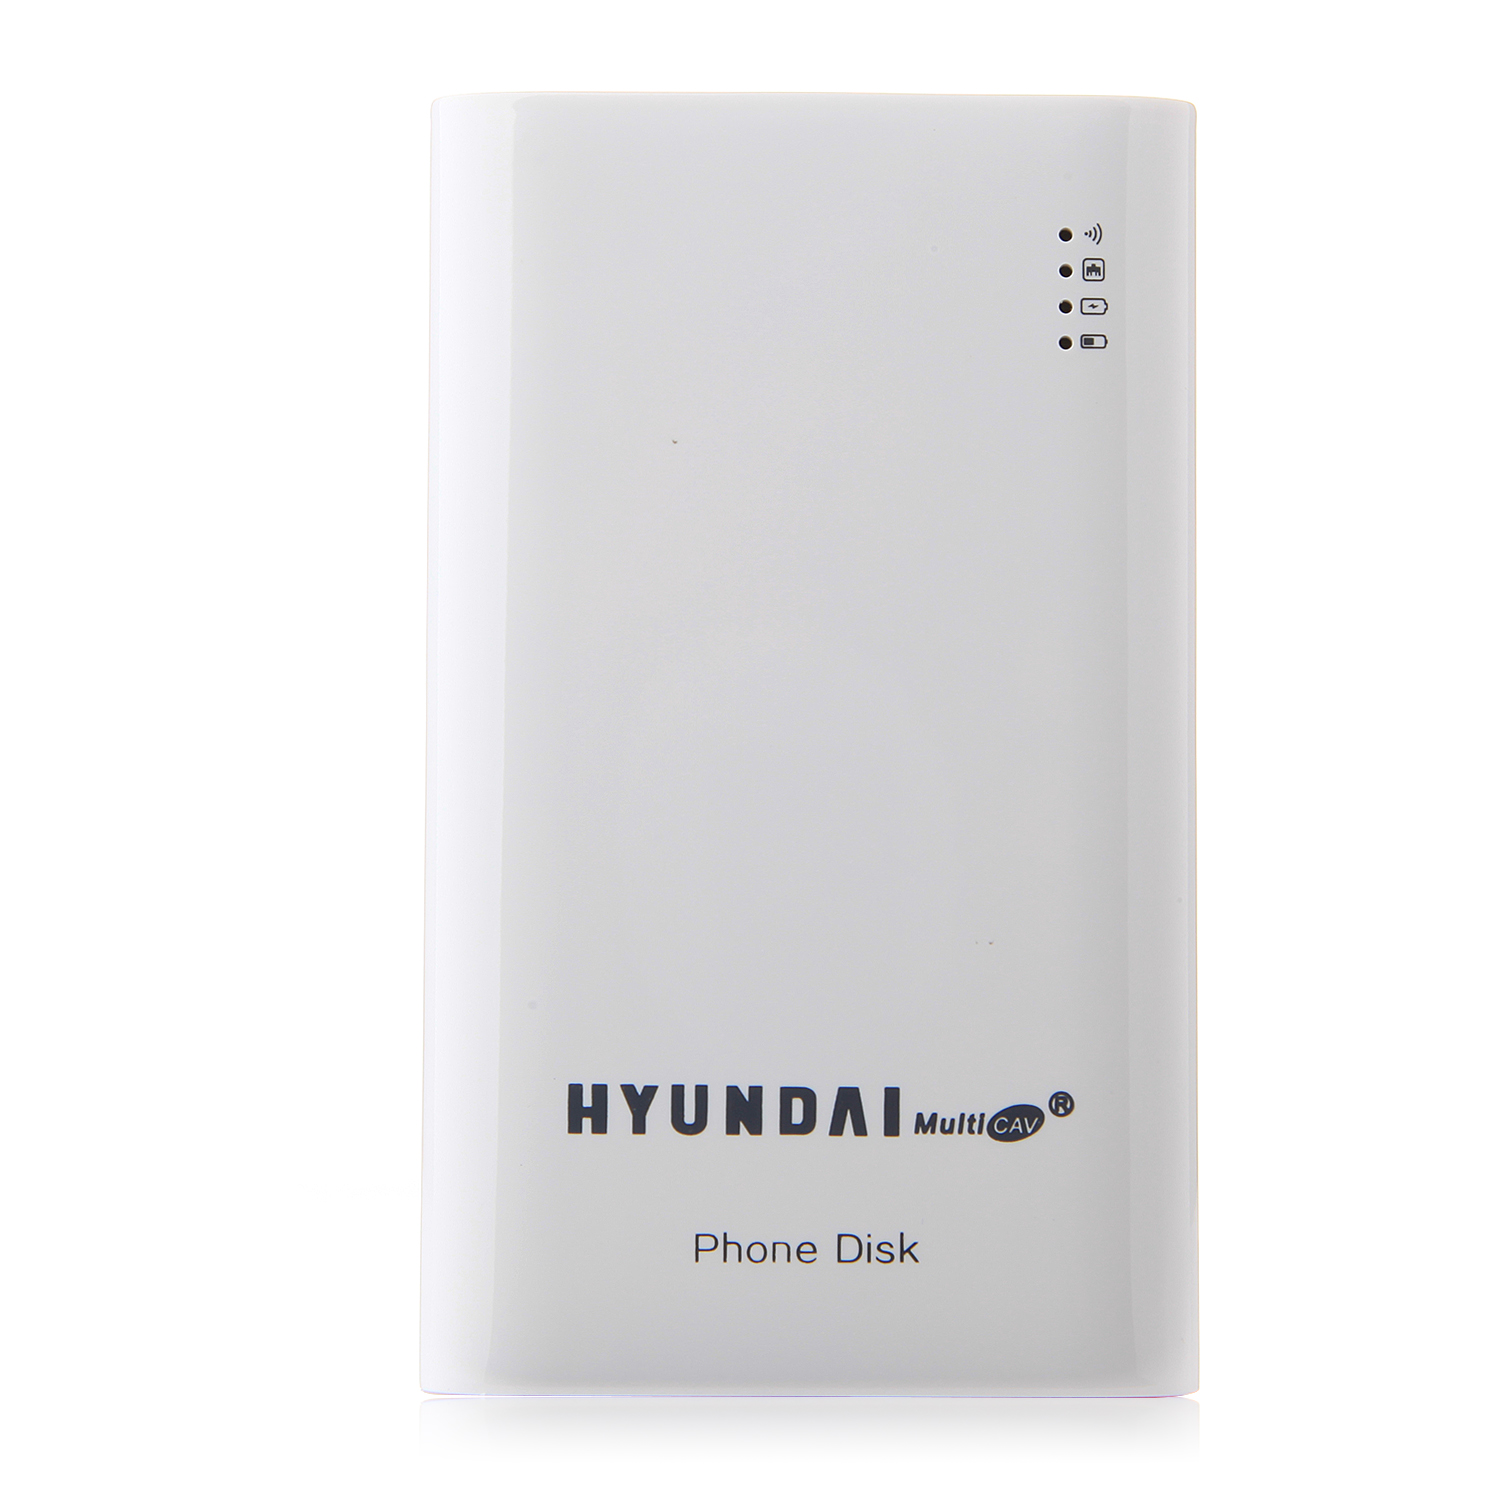 HYUNDAI PD4000 Multi-functional Phone Disk 32GB + Power Bank + Router for Phone PC